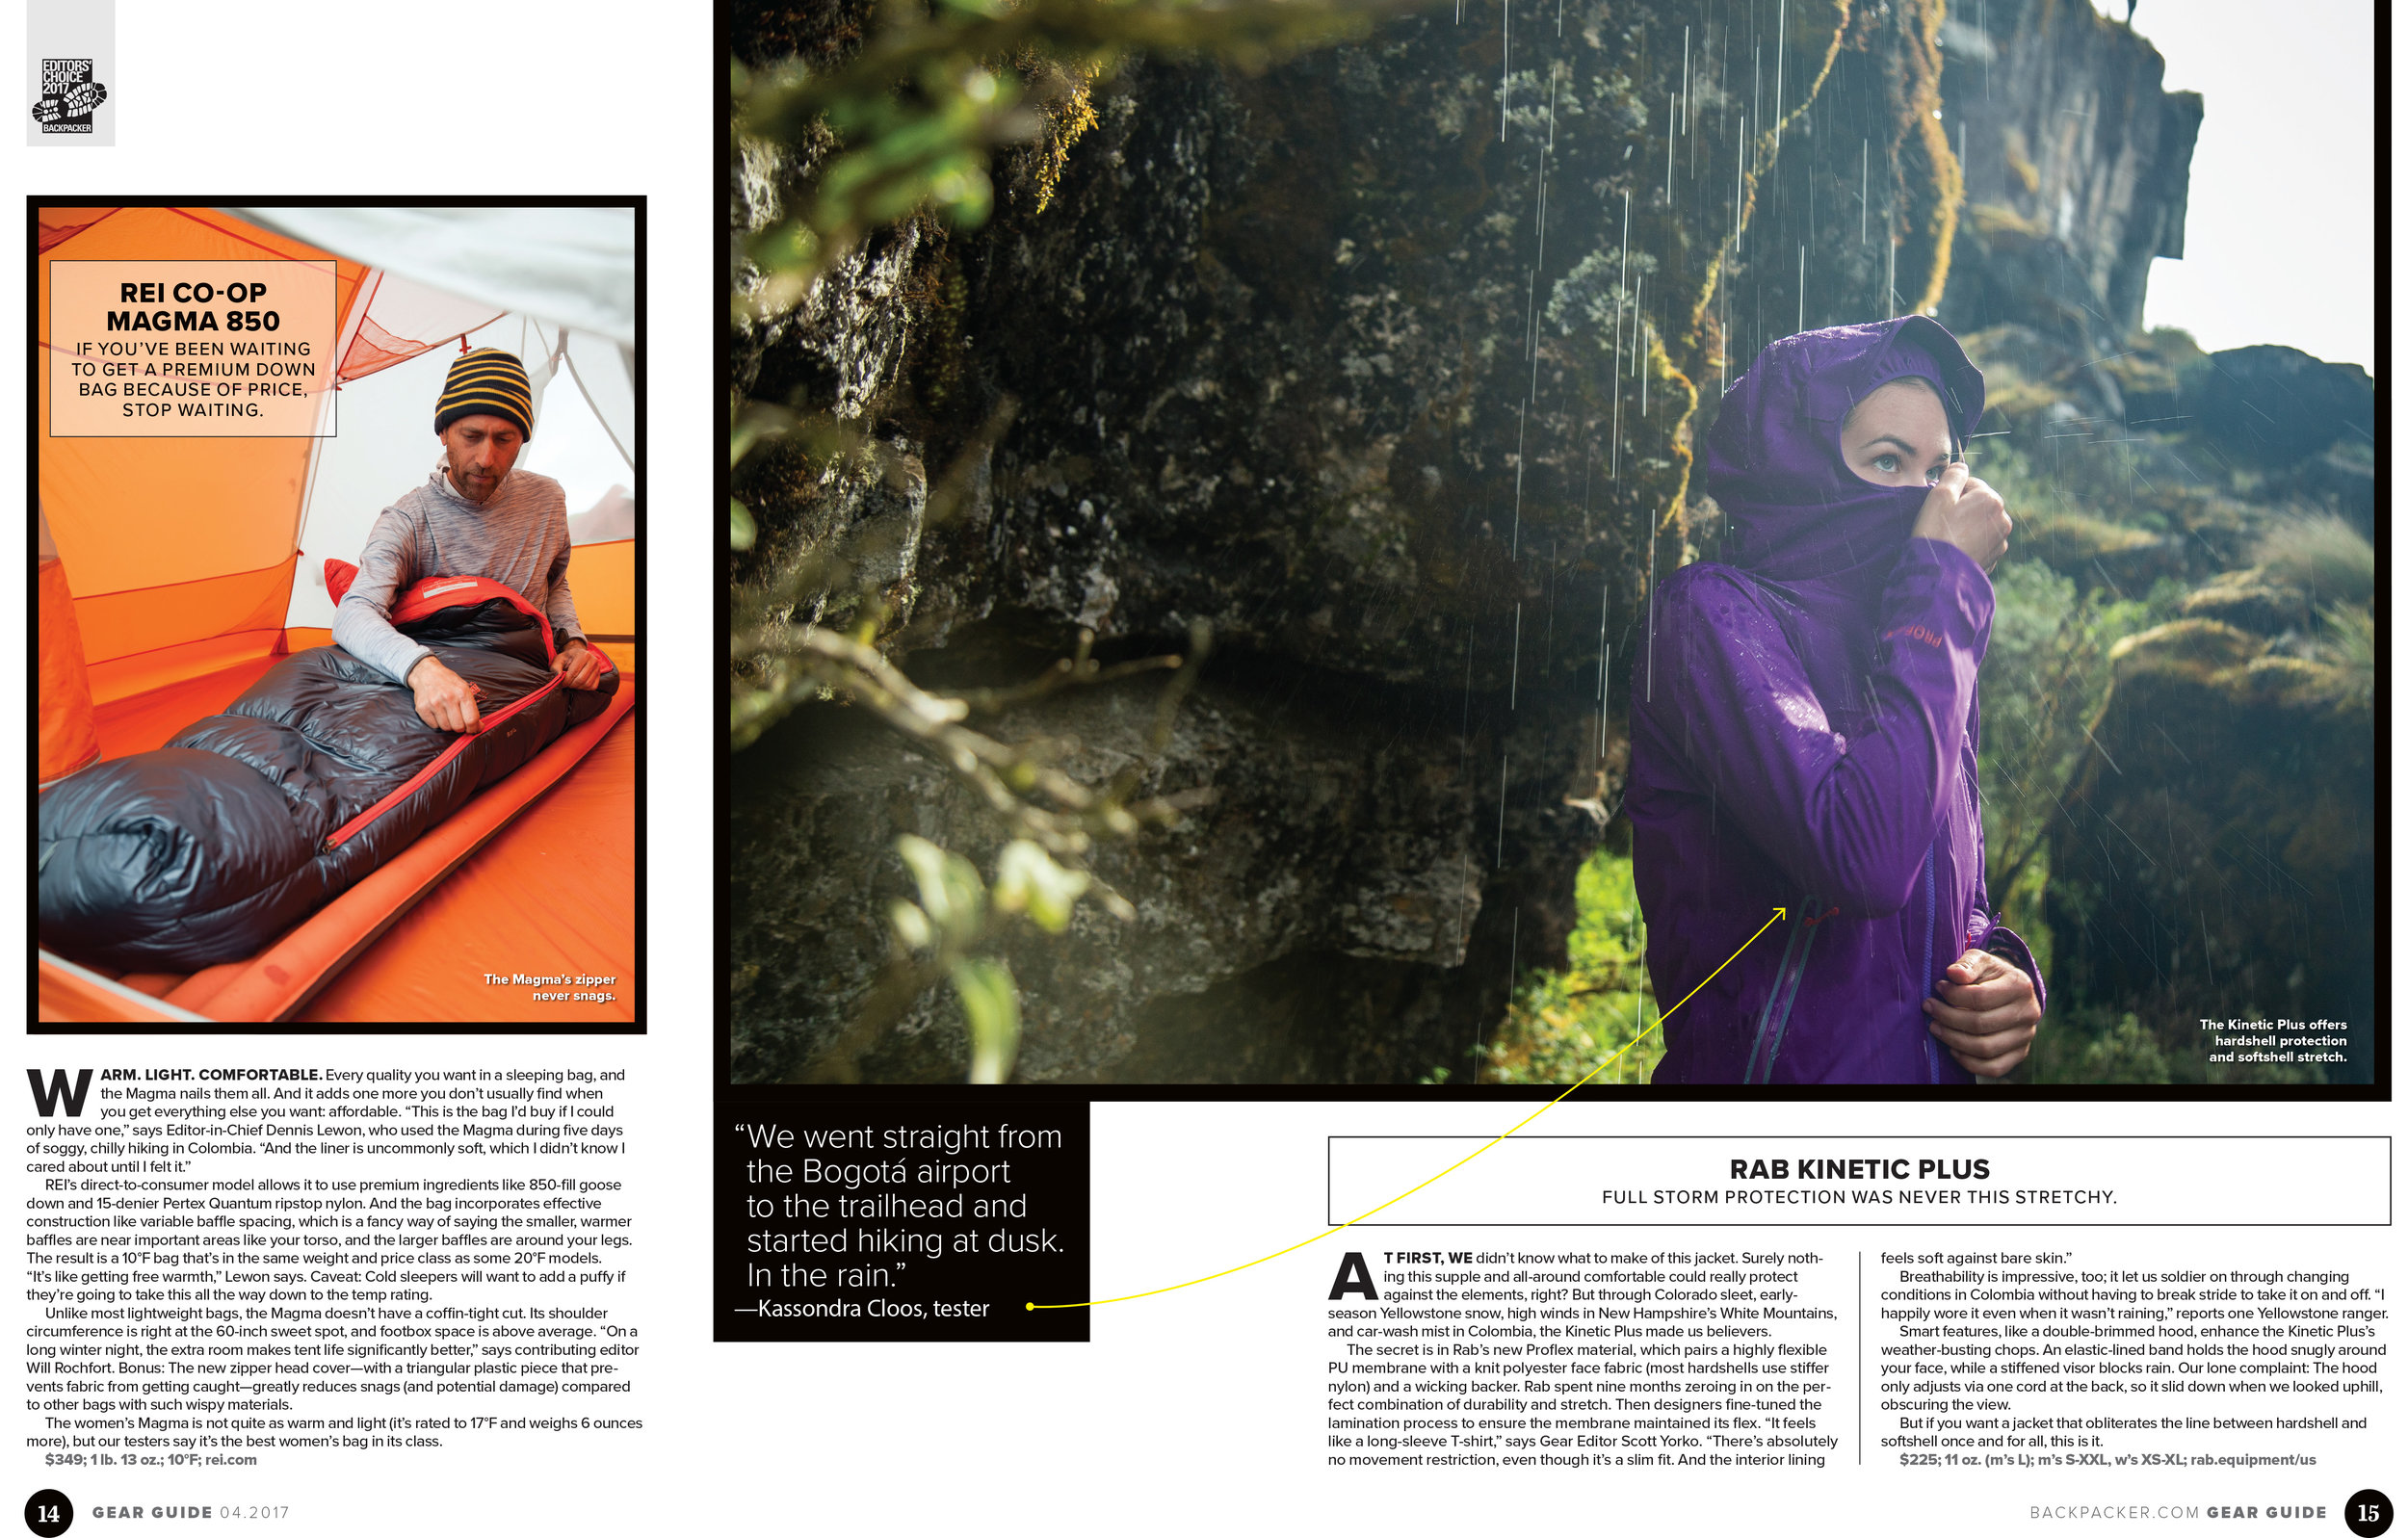 Me, on the right, testing gear on  BACKPACKER 's   Editor's Choice trip to Colombia. This spread was in the Spring 2017 Gear Guide. Photo:  WhereNext